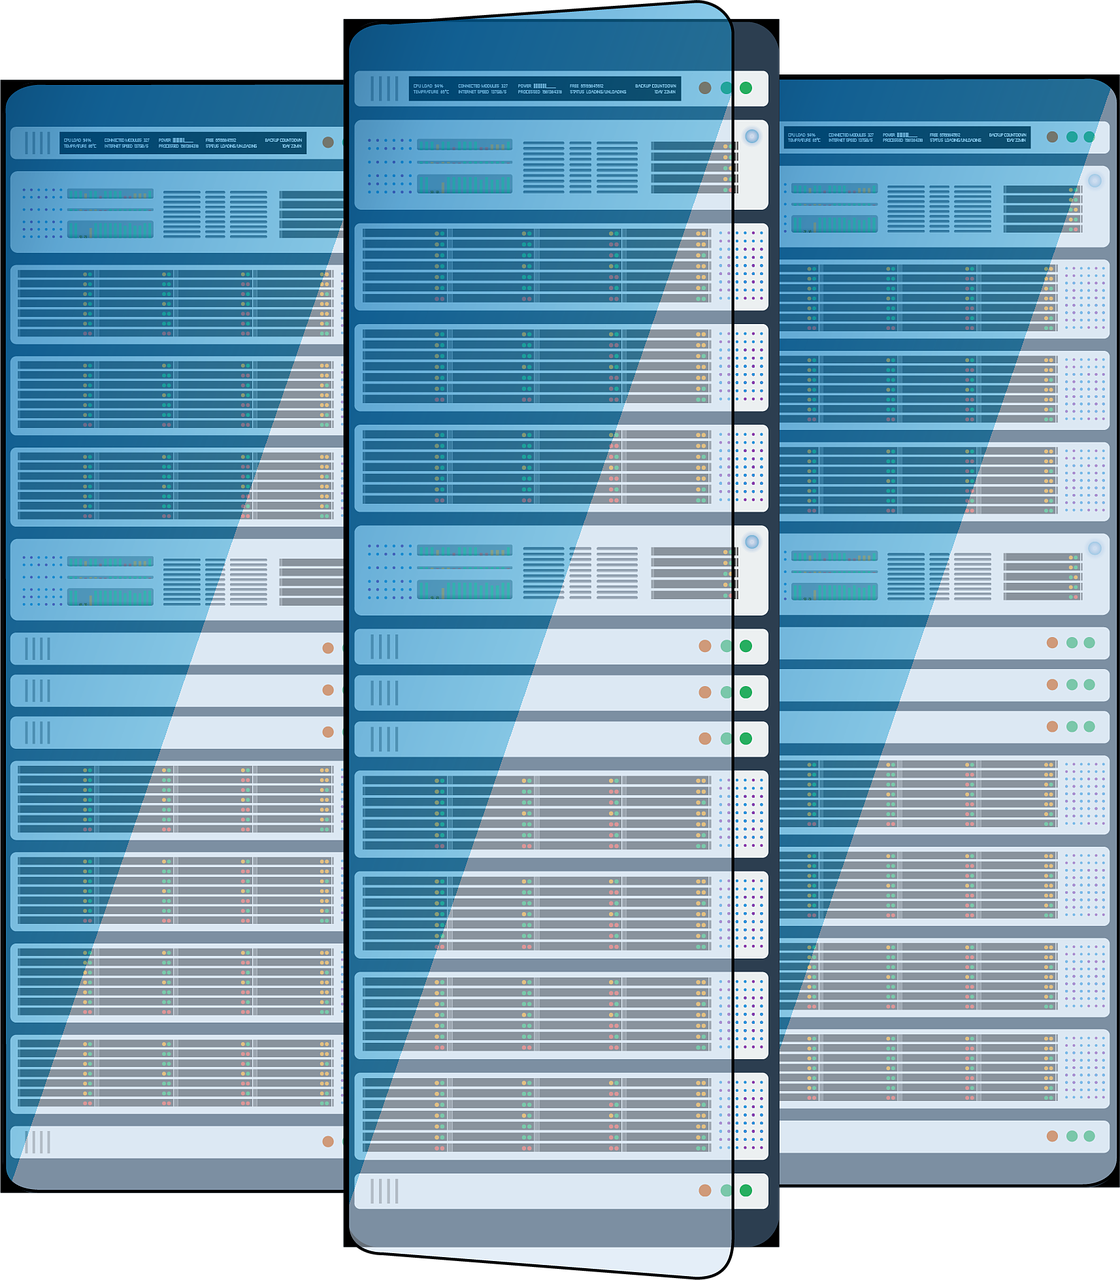 illustration of three data servers side by side